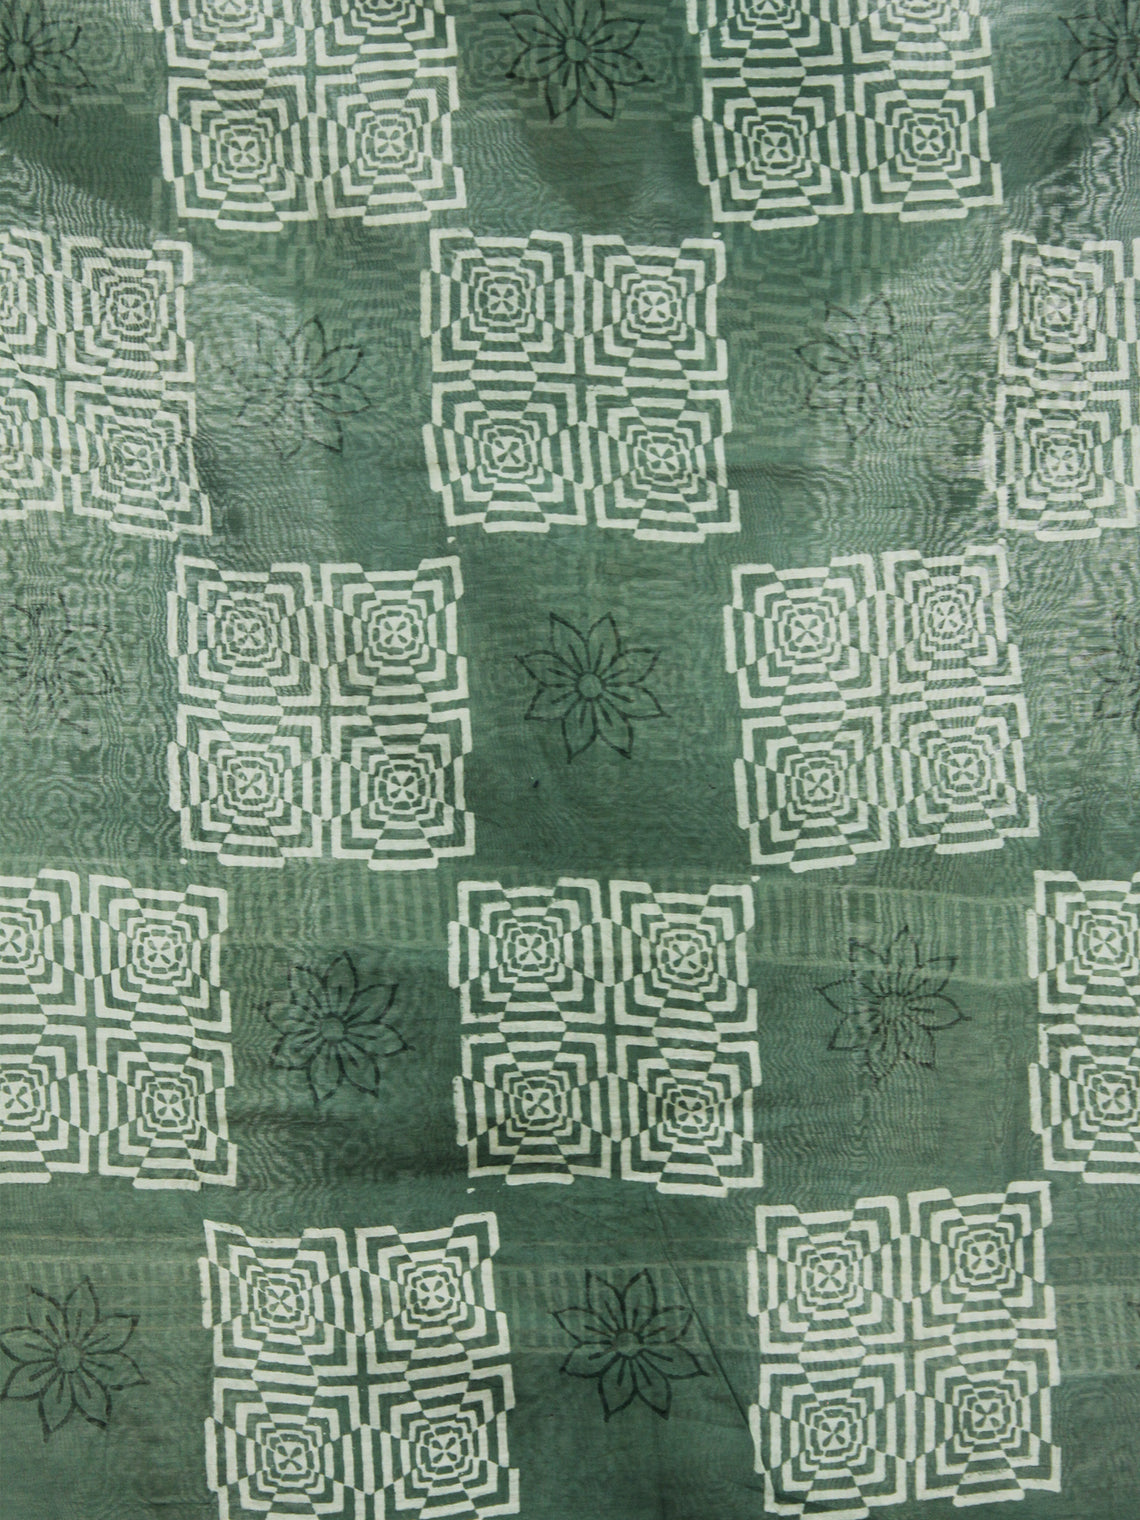 Fern Green Ivory Chanderi Hand Black Printed & Hand Painted Dupatta - D04170270